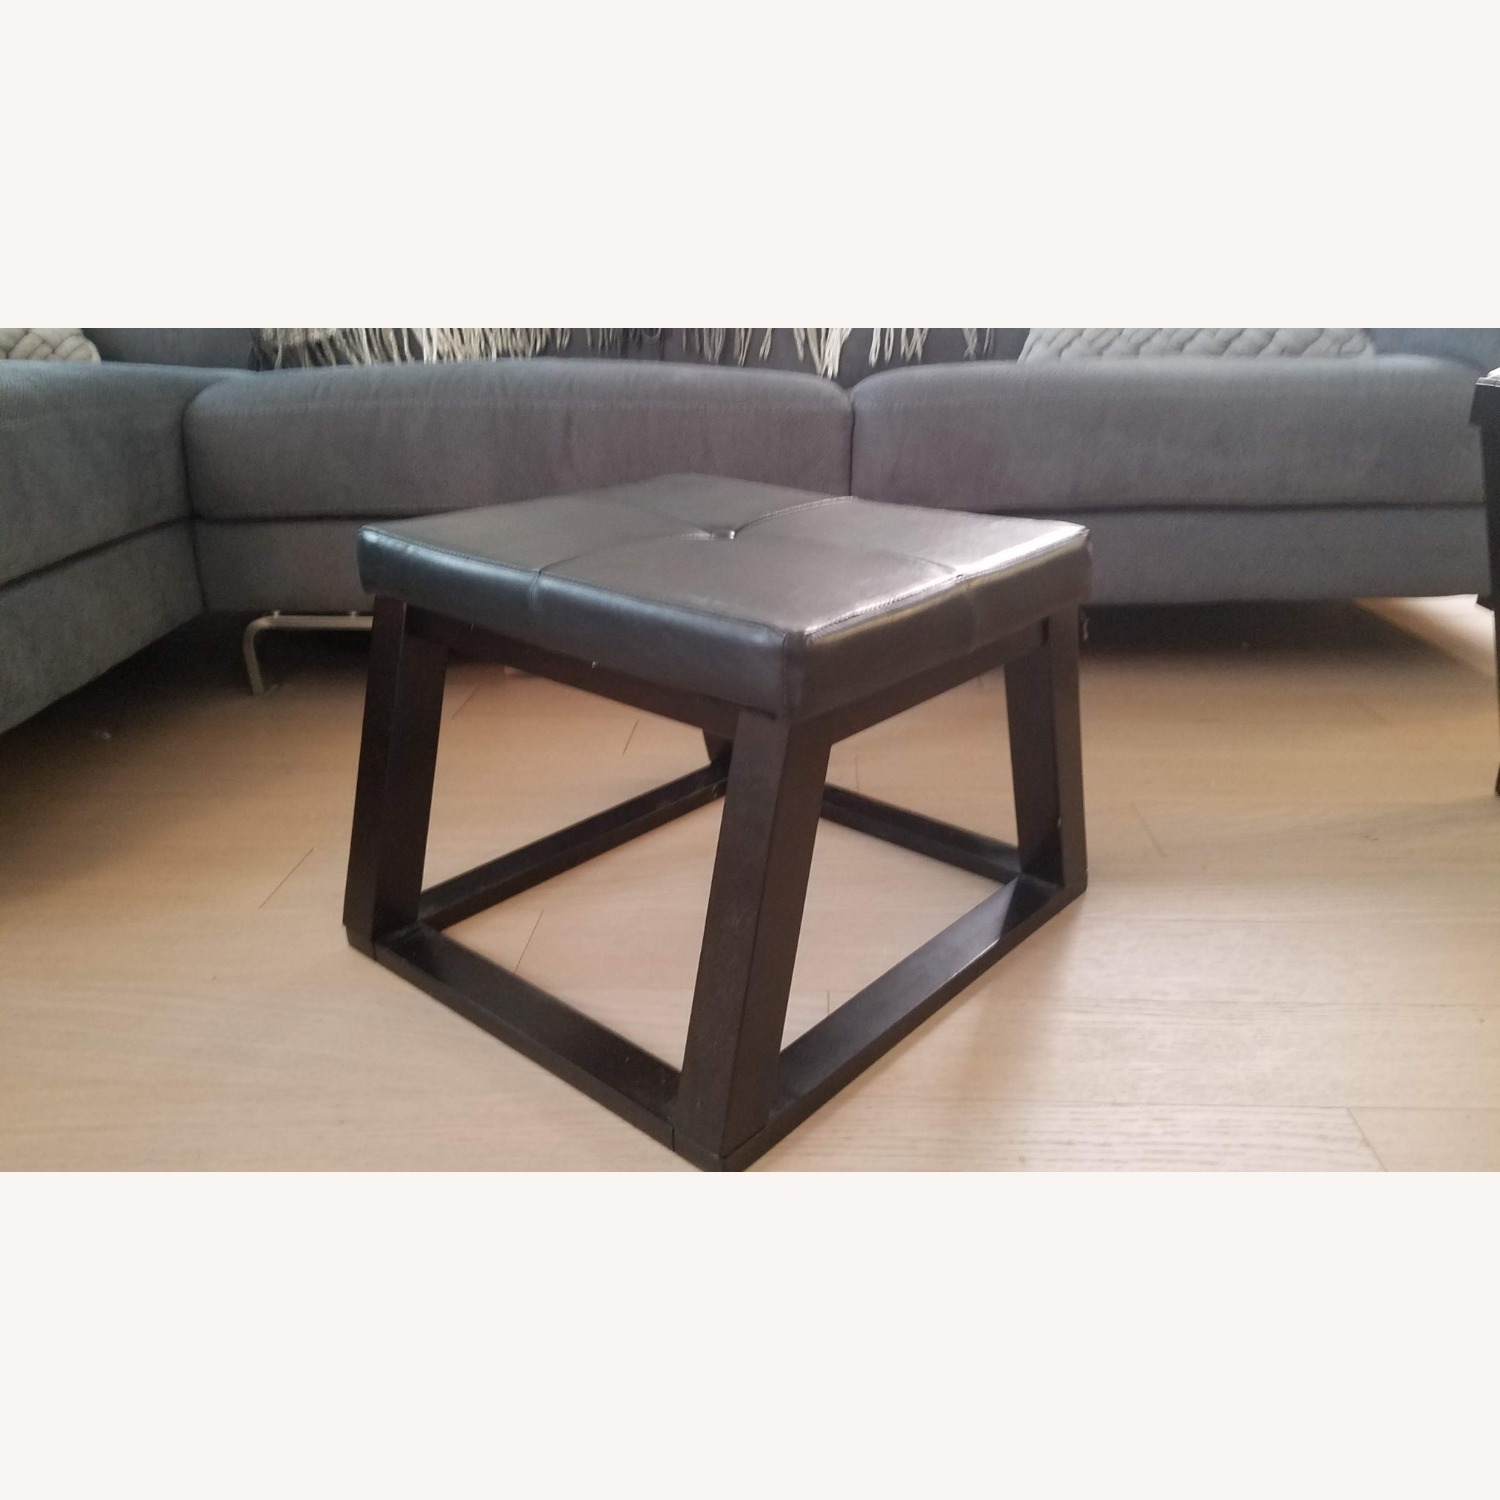 Black Wood and Glass Coffee Table with 2 Ottomans - image-5